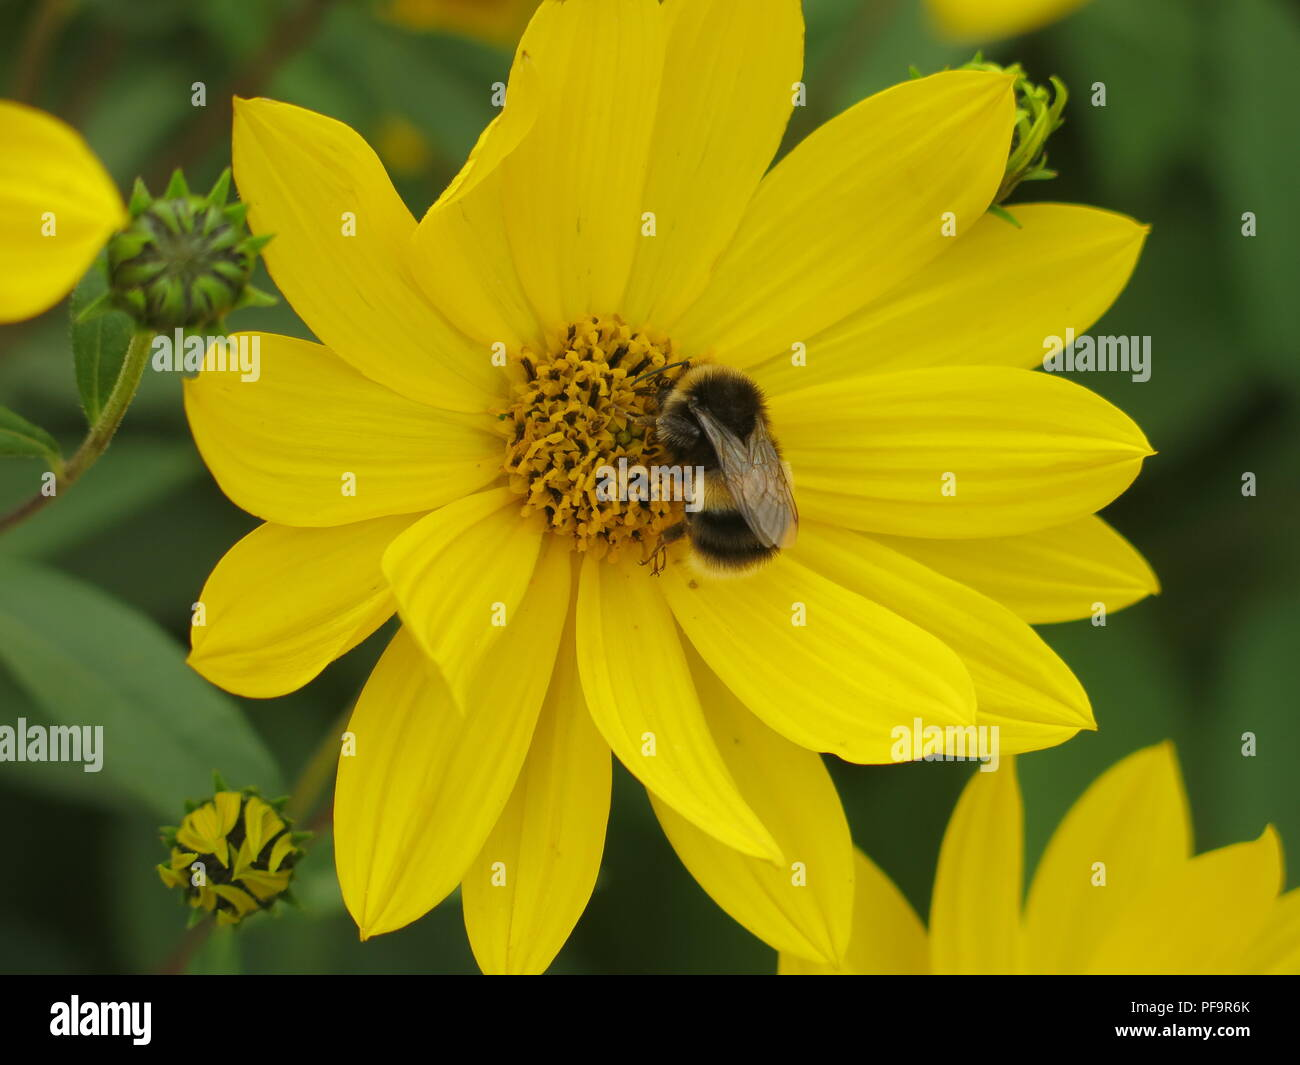 Close-up of a bumble bee searching for nectar, alighted on the centre of a yellow-petalled summer plant - Stock Image